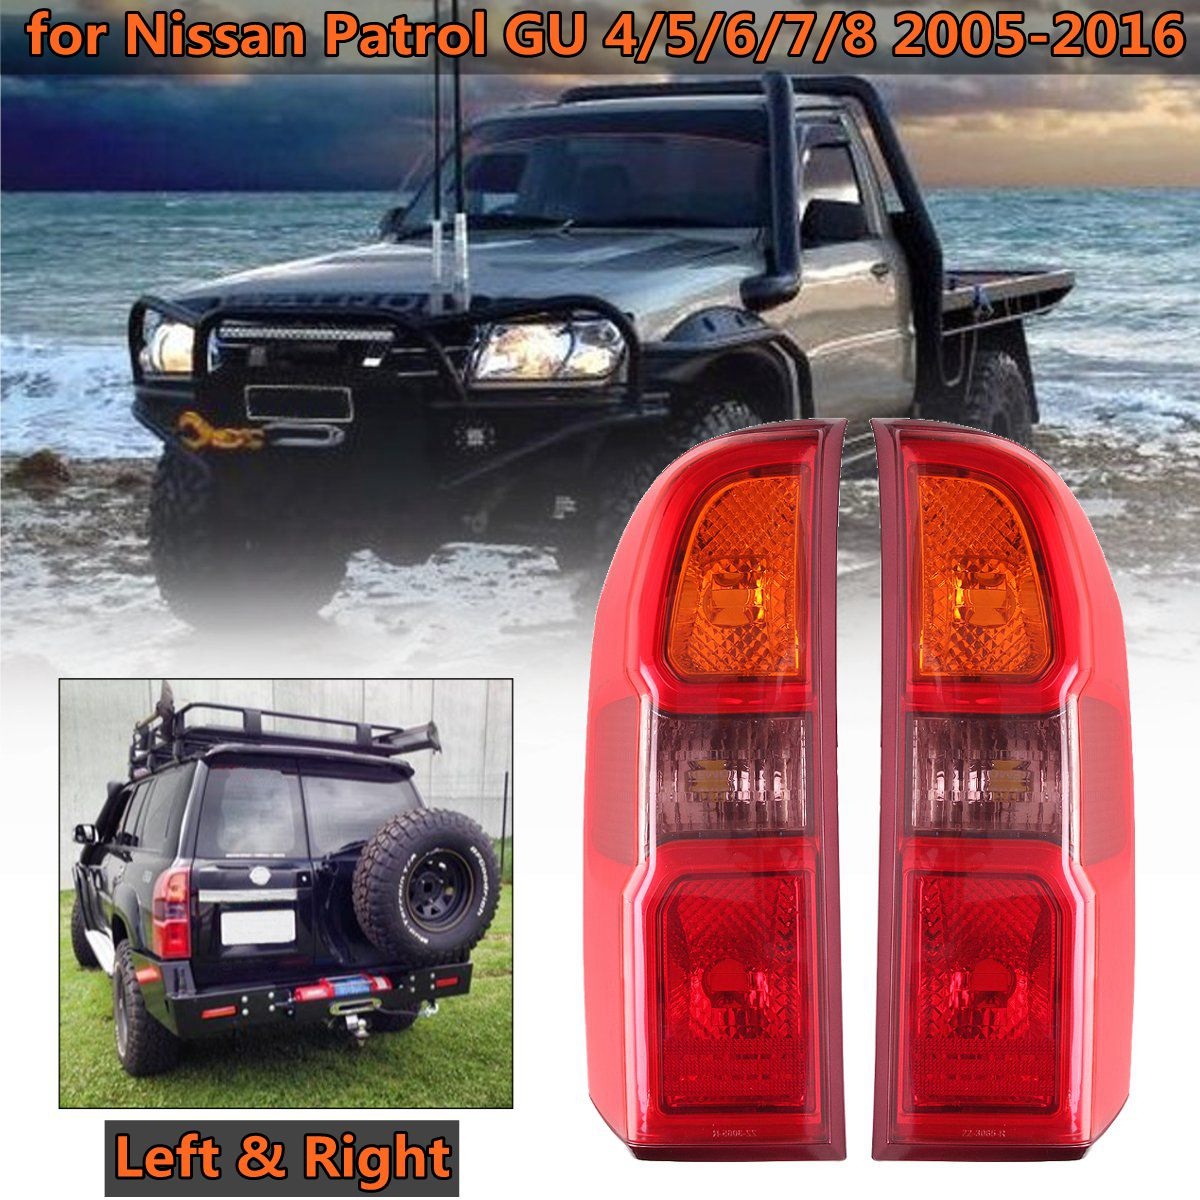 For Nissan Patrol GU 4/5/6/7/8 2005 2006 2007 2008 2009 2010 2011 2012~2016 Brake Lamp Rear Driver Passenger Side Tail Light rear driver passenger side tail light brake lamp for nissan patrol gu 4 5 6 7 8 2005 2006 2007 2008 2009 2010 2011 2012 2016